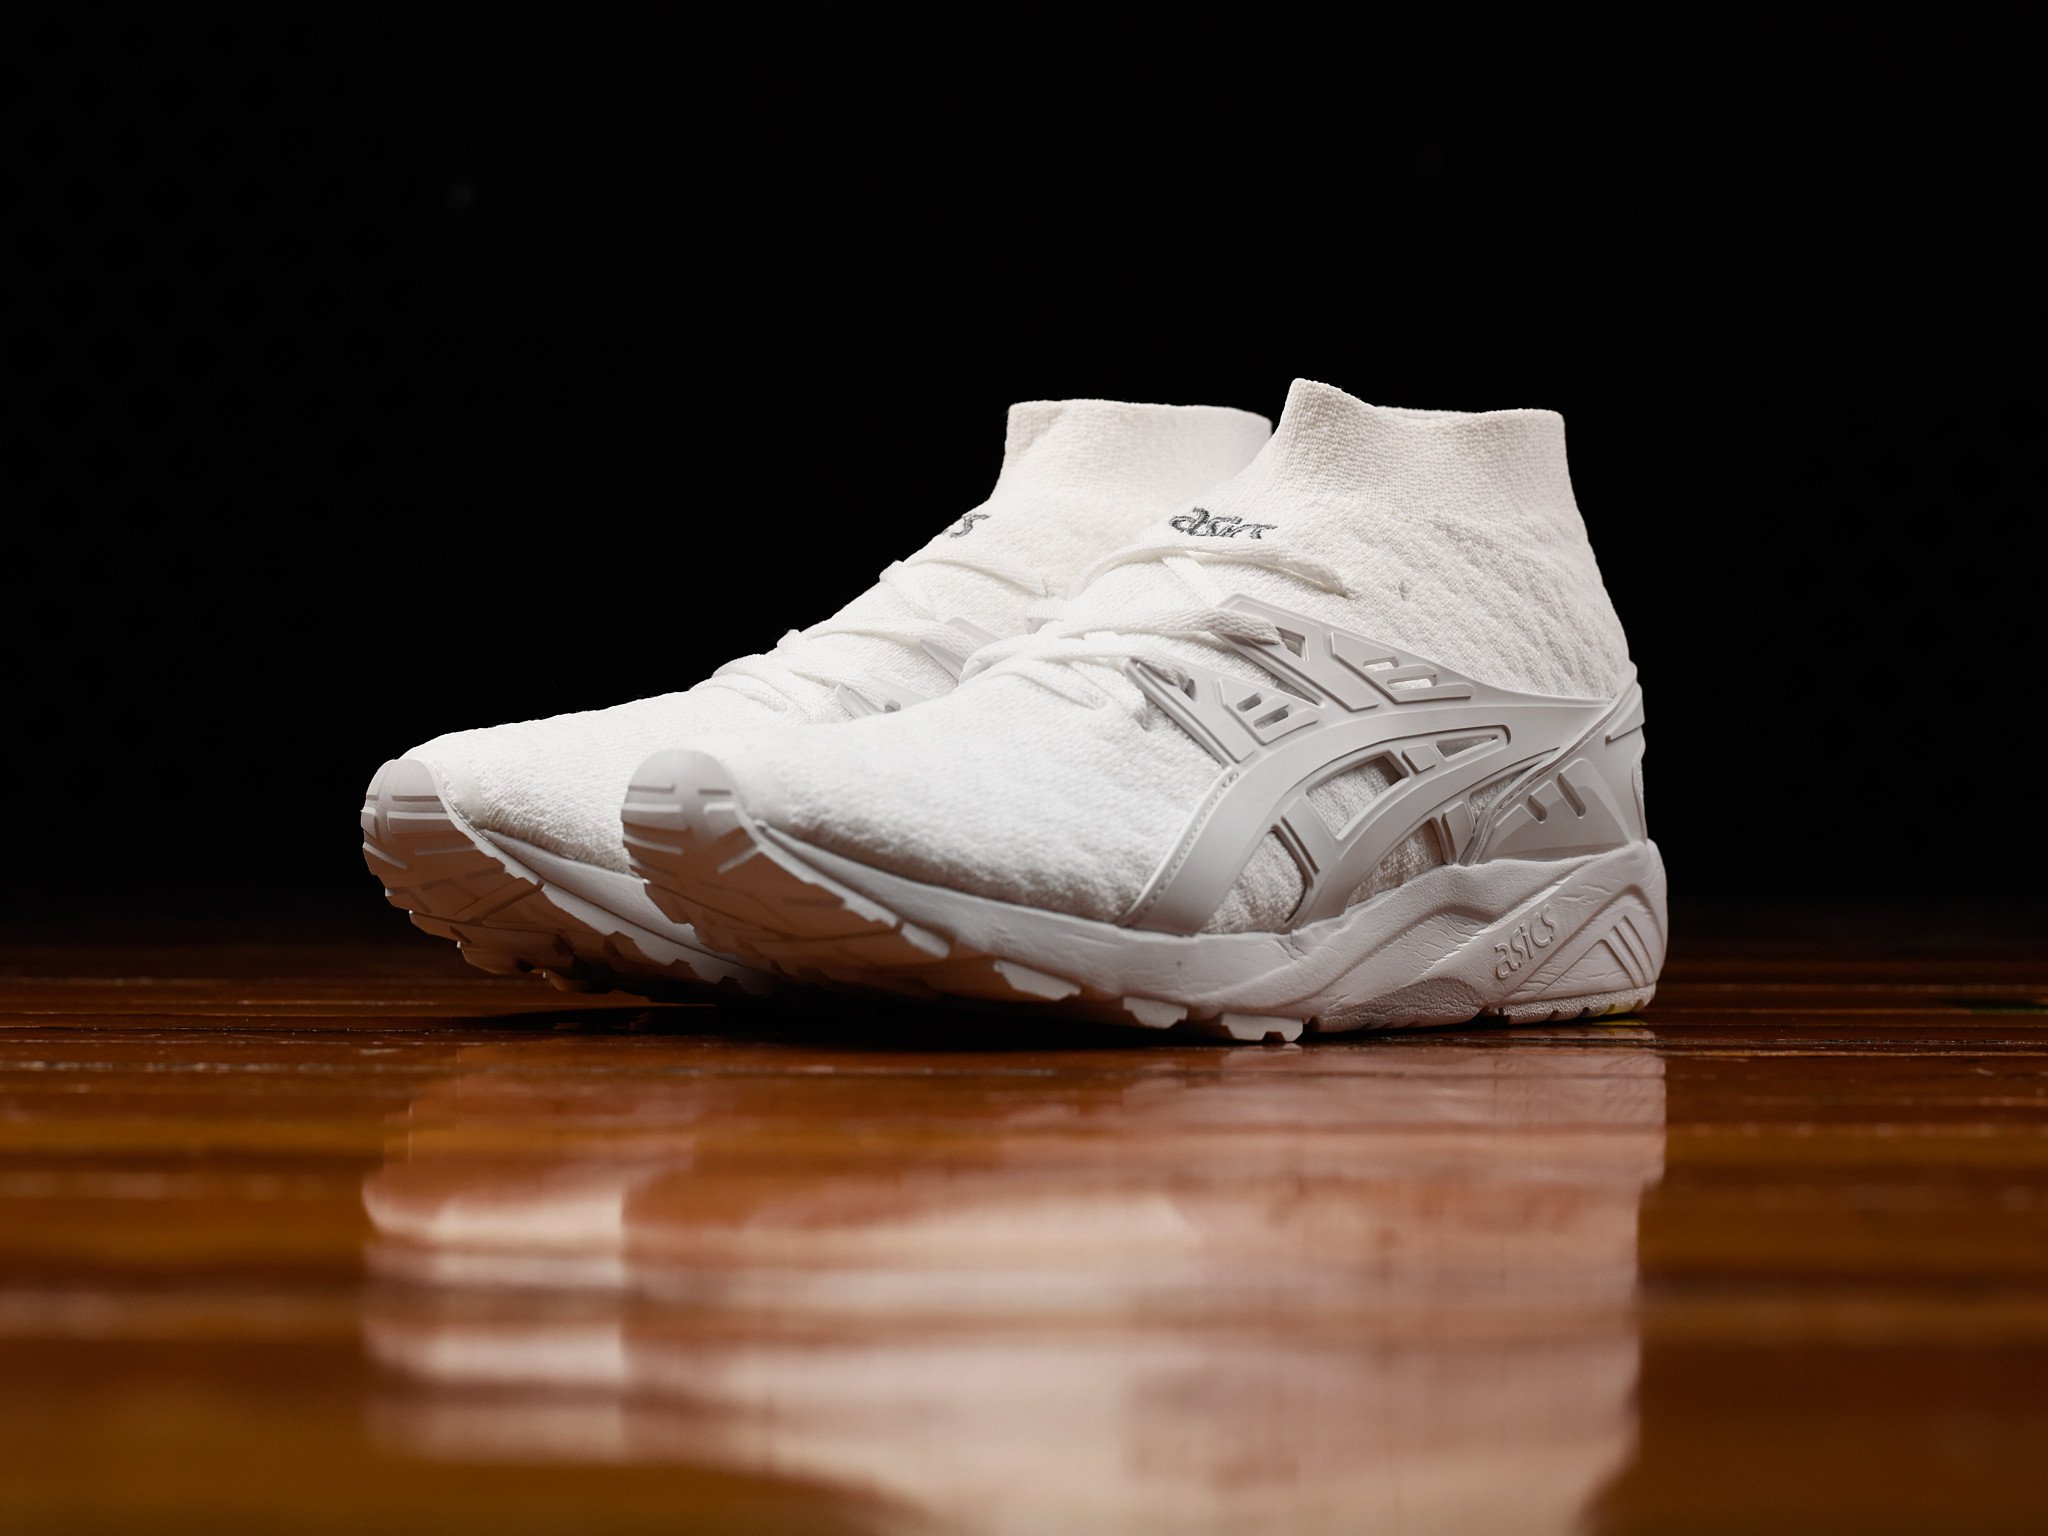 Asics Archives Archives 19206 Page 12 3 sur 12 WearTesters 1b4c5b7 - propertiindonesia.site